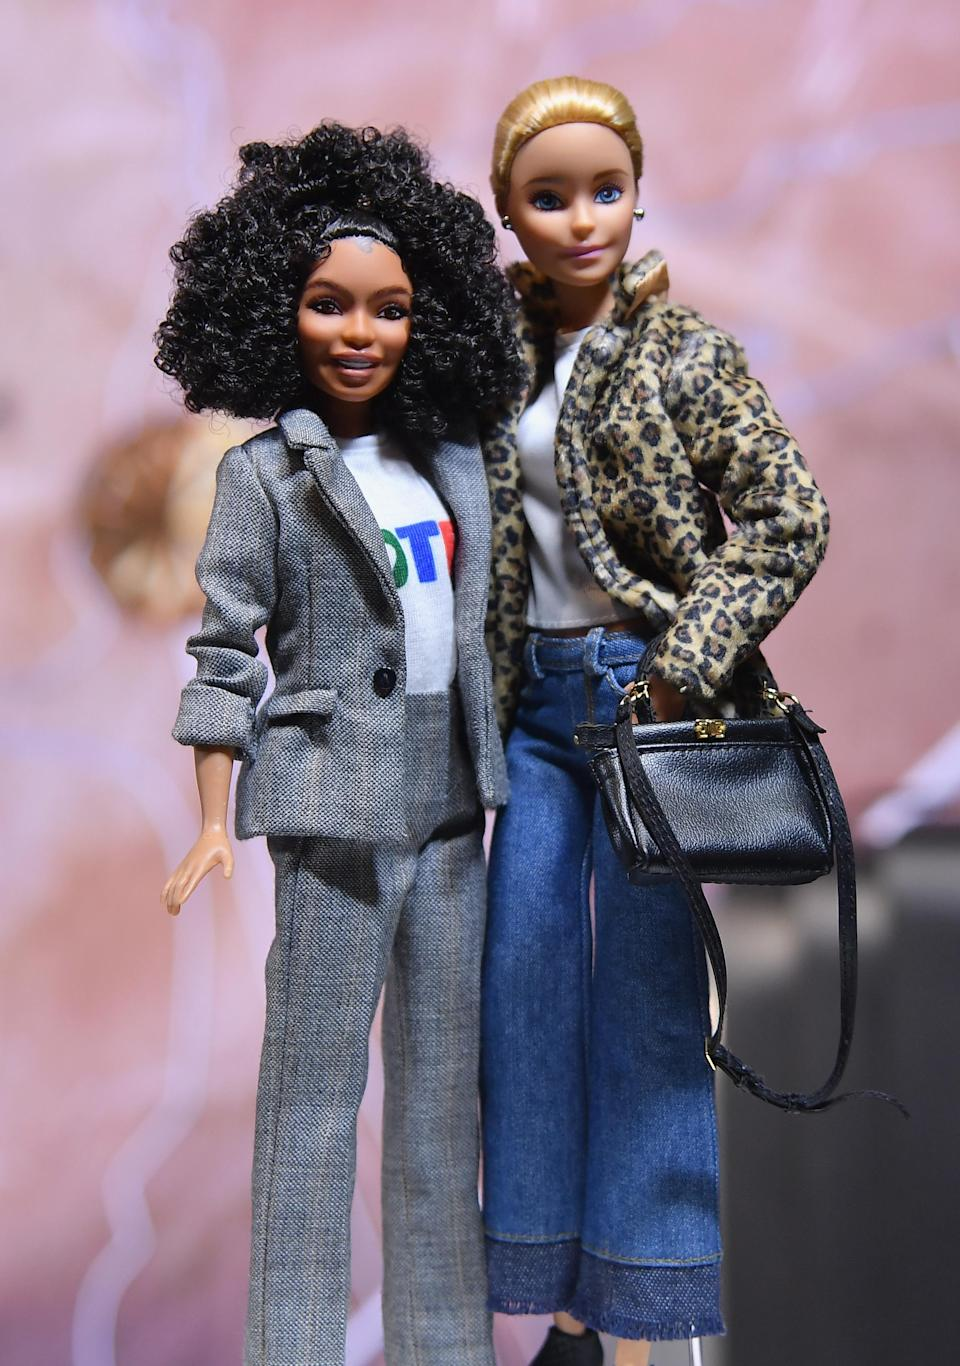 New Barbie Dolls released to celebrate Barbie's 60th Anniversary and International Women's Day at the Empire State Building on in New York City in 2019. (Photo: ANGELA WEISS/AFP/Getty Images)